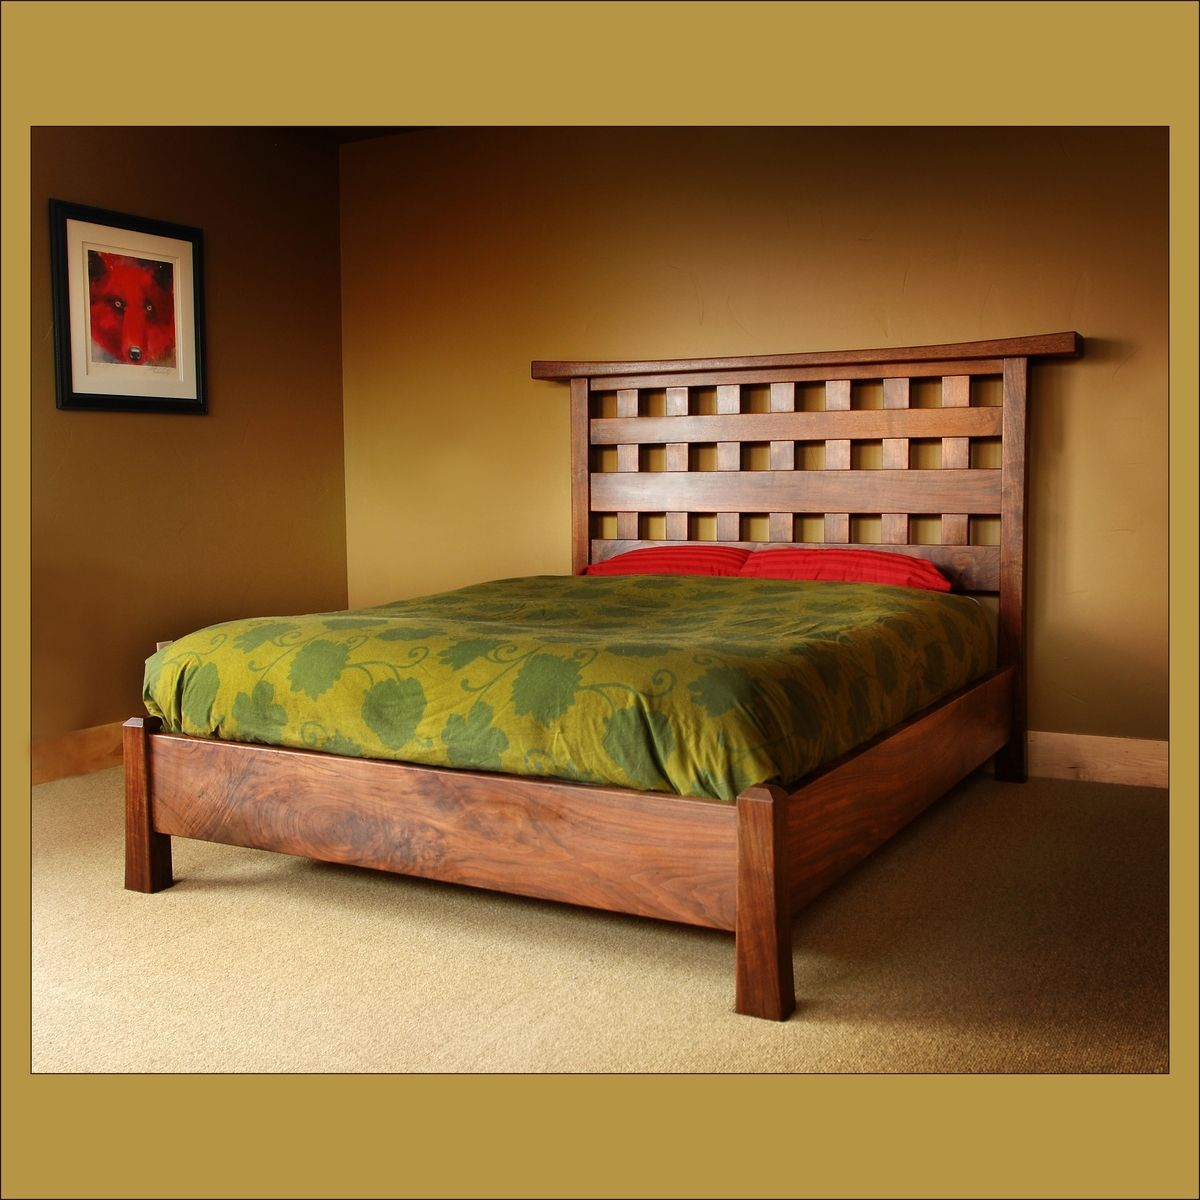 Japanese Garden Queen size Bed Bed frame and headboard